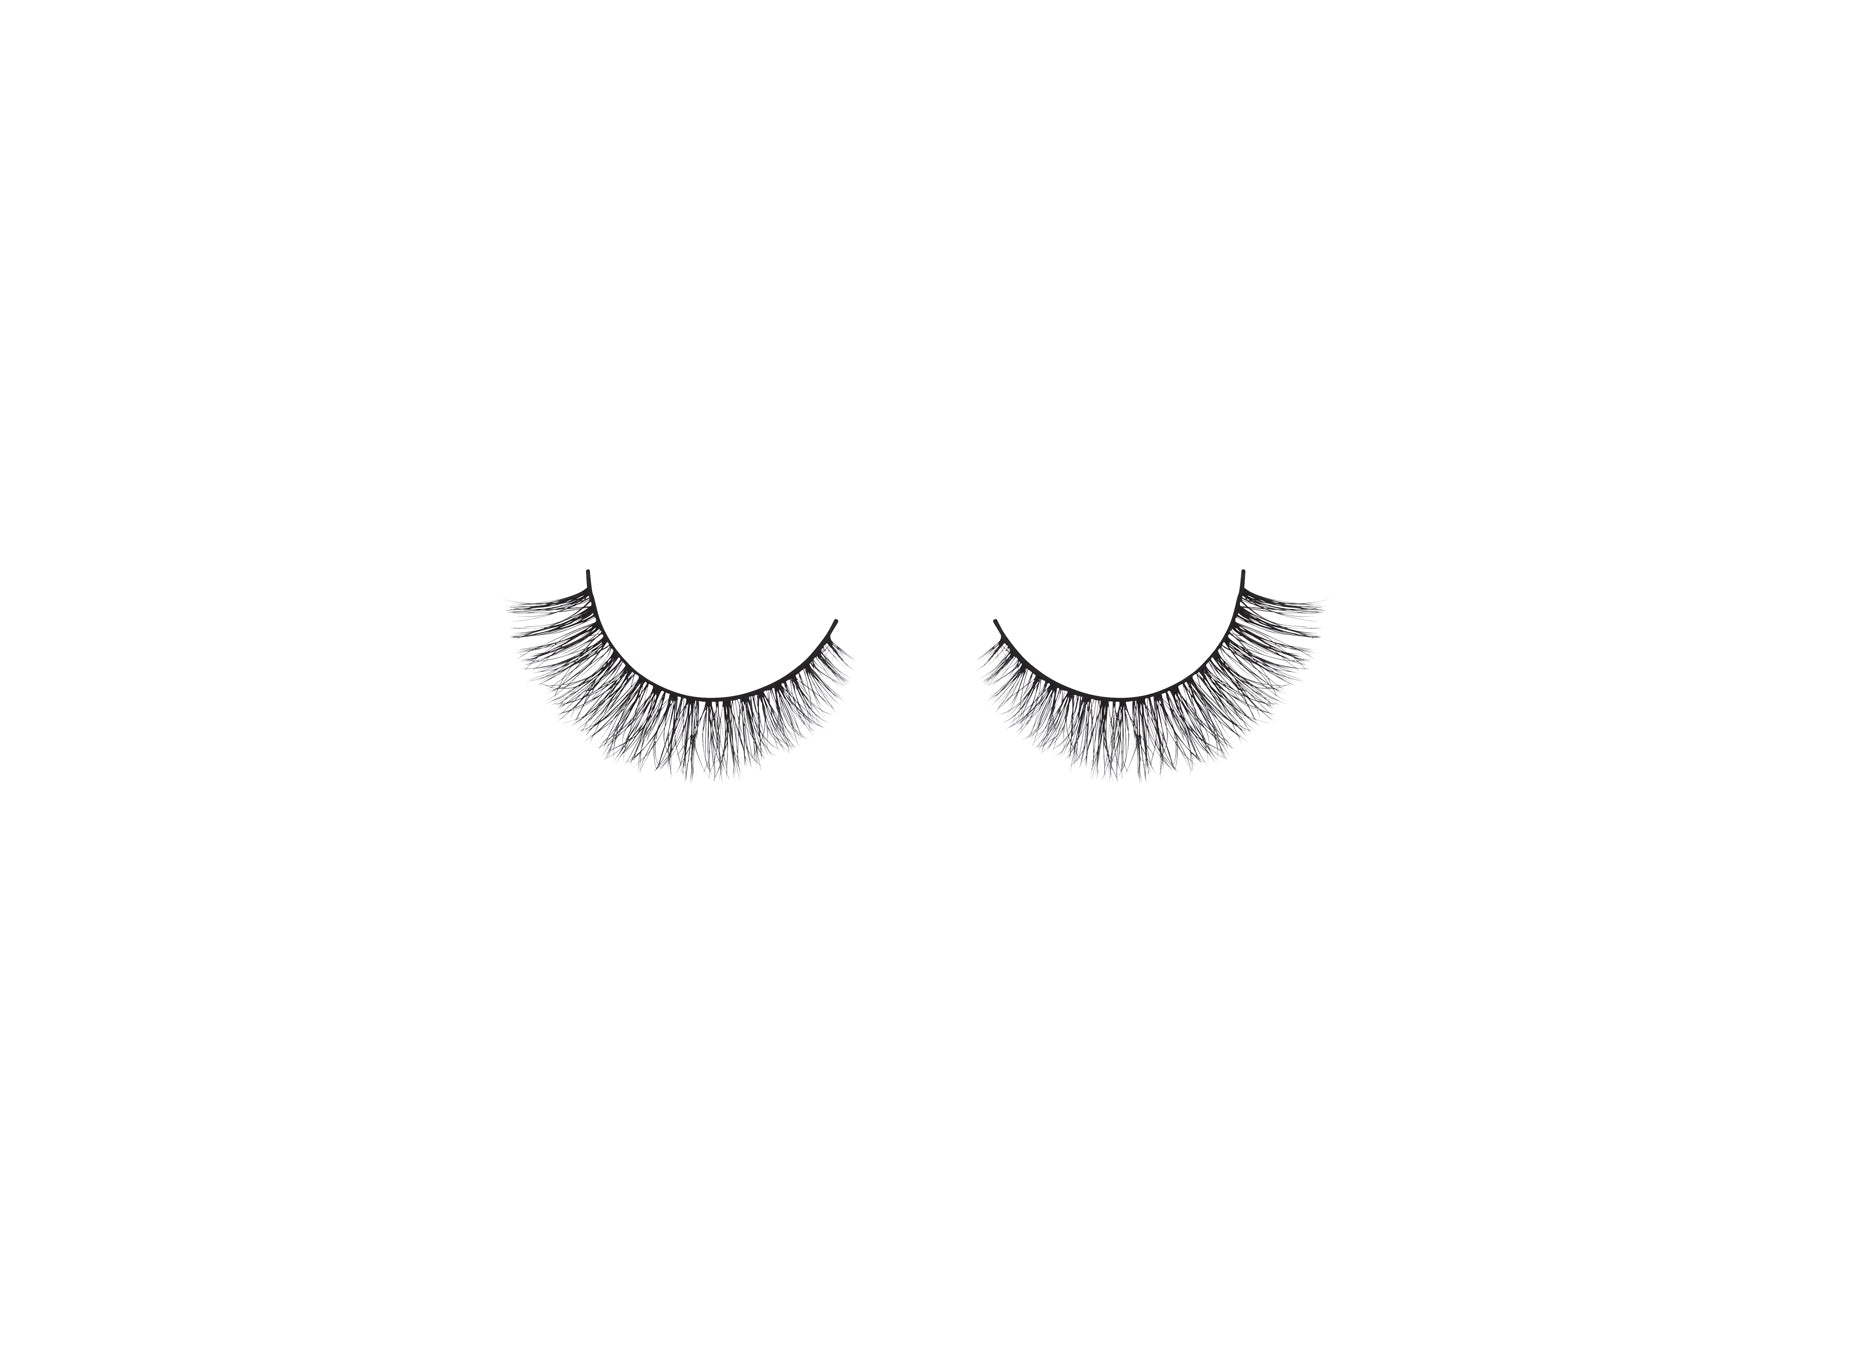 thumbnail - flirty lashes from lash star beauty